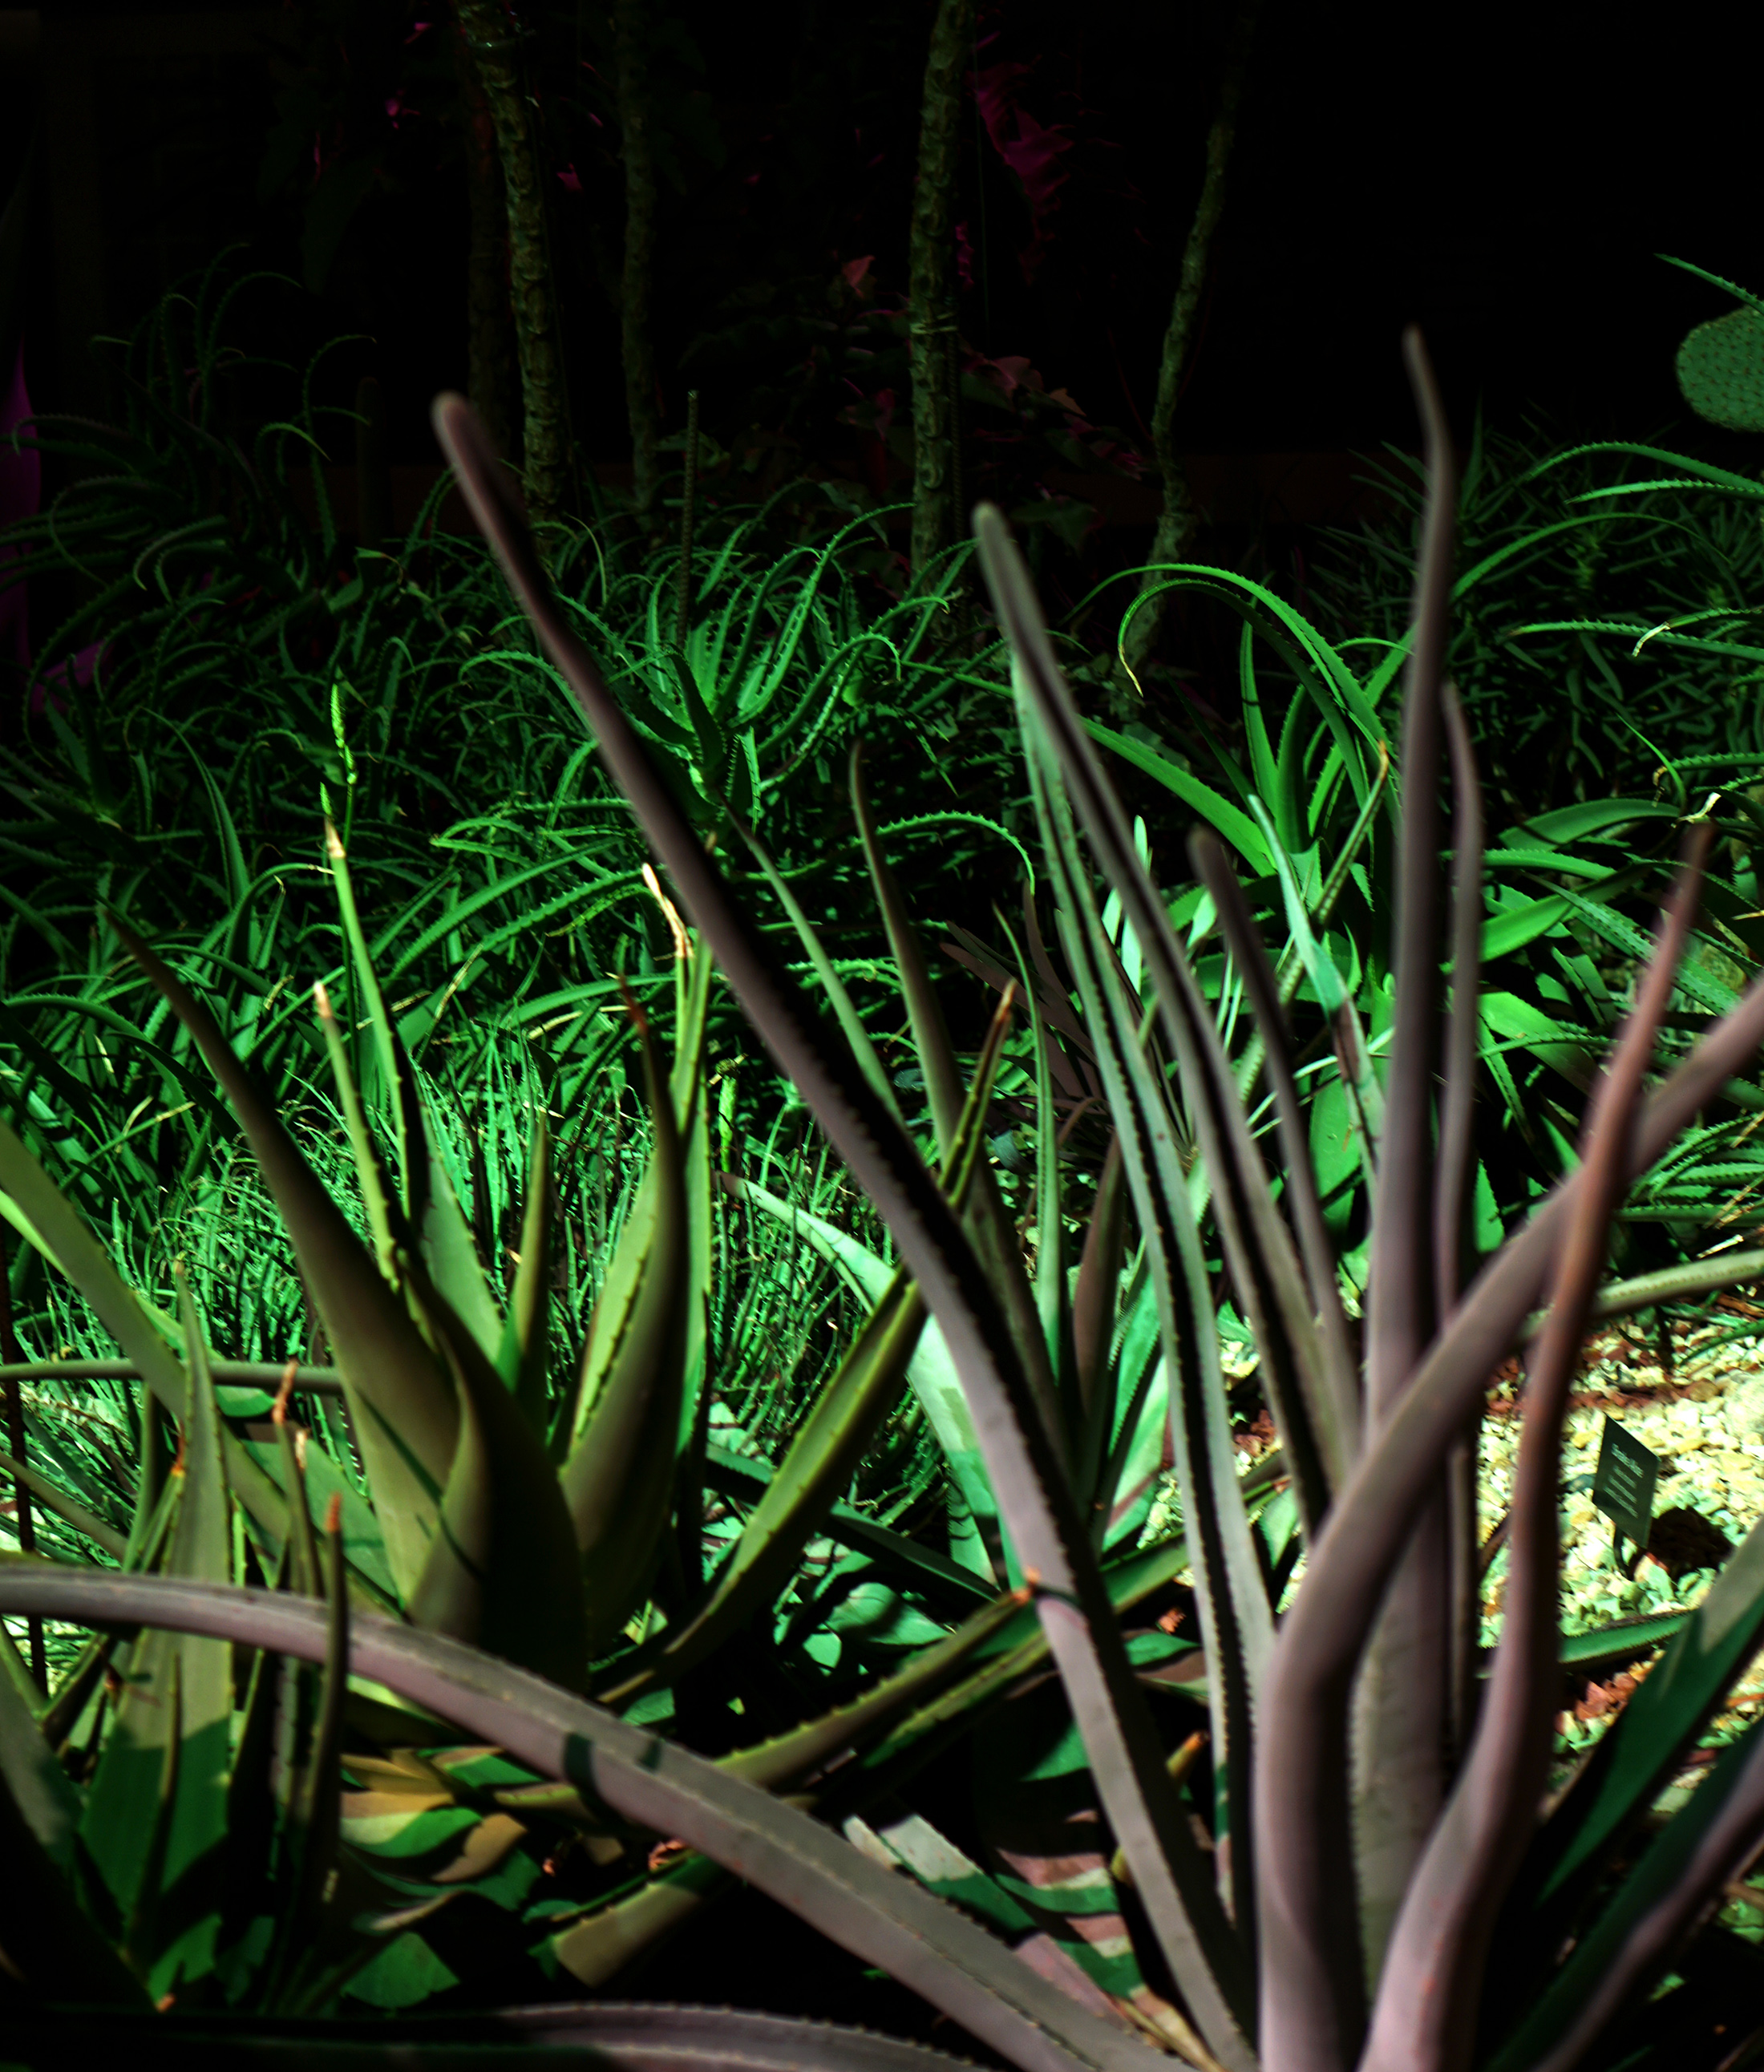 Wild desert plants in the Garfield Park Conservatory at night, Chicago / Darker than Green